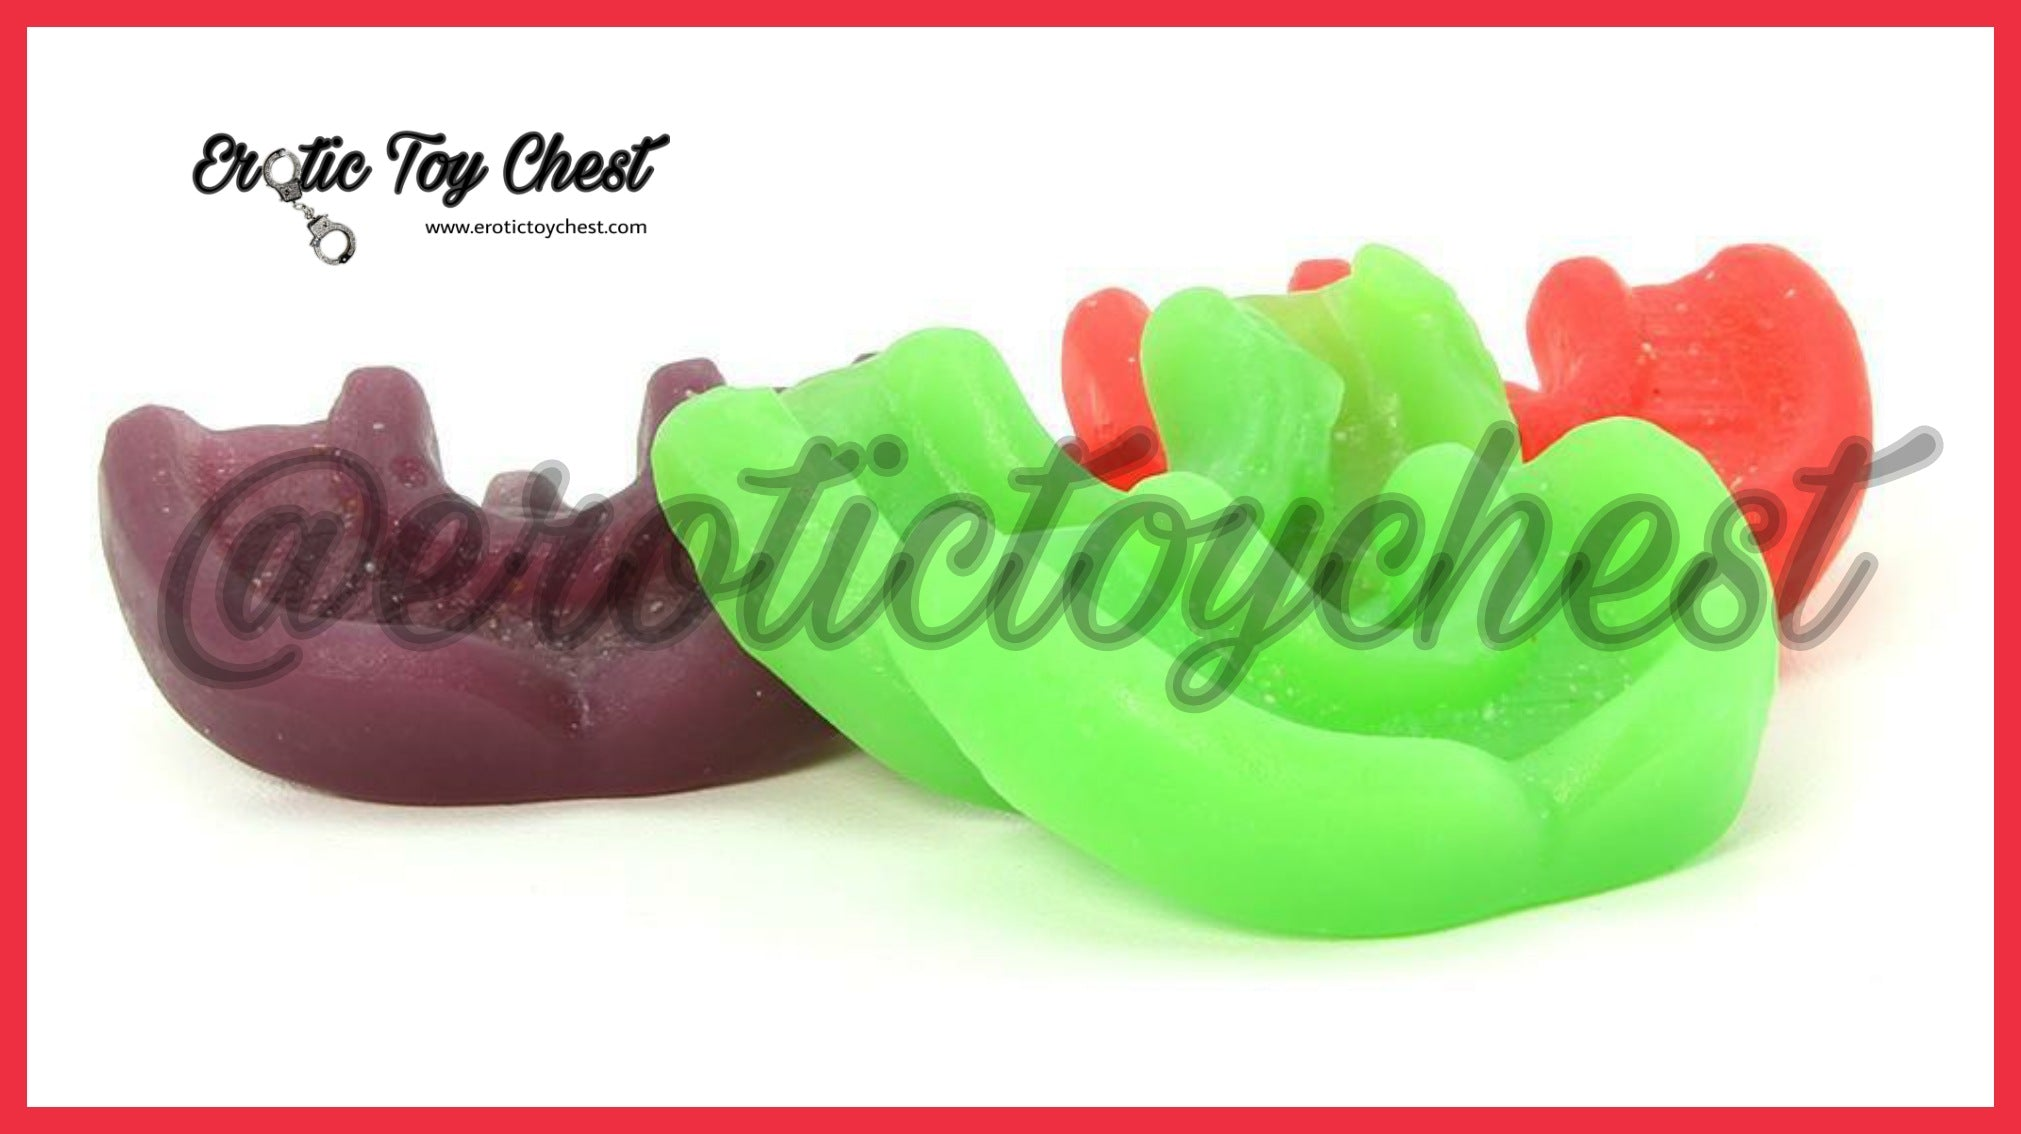 Oral Sex Gummy Candy Teeth Covers